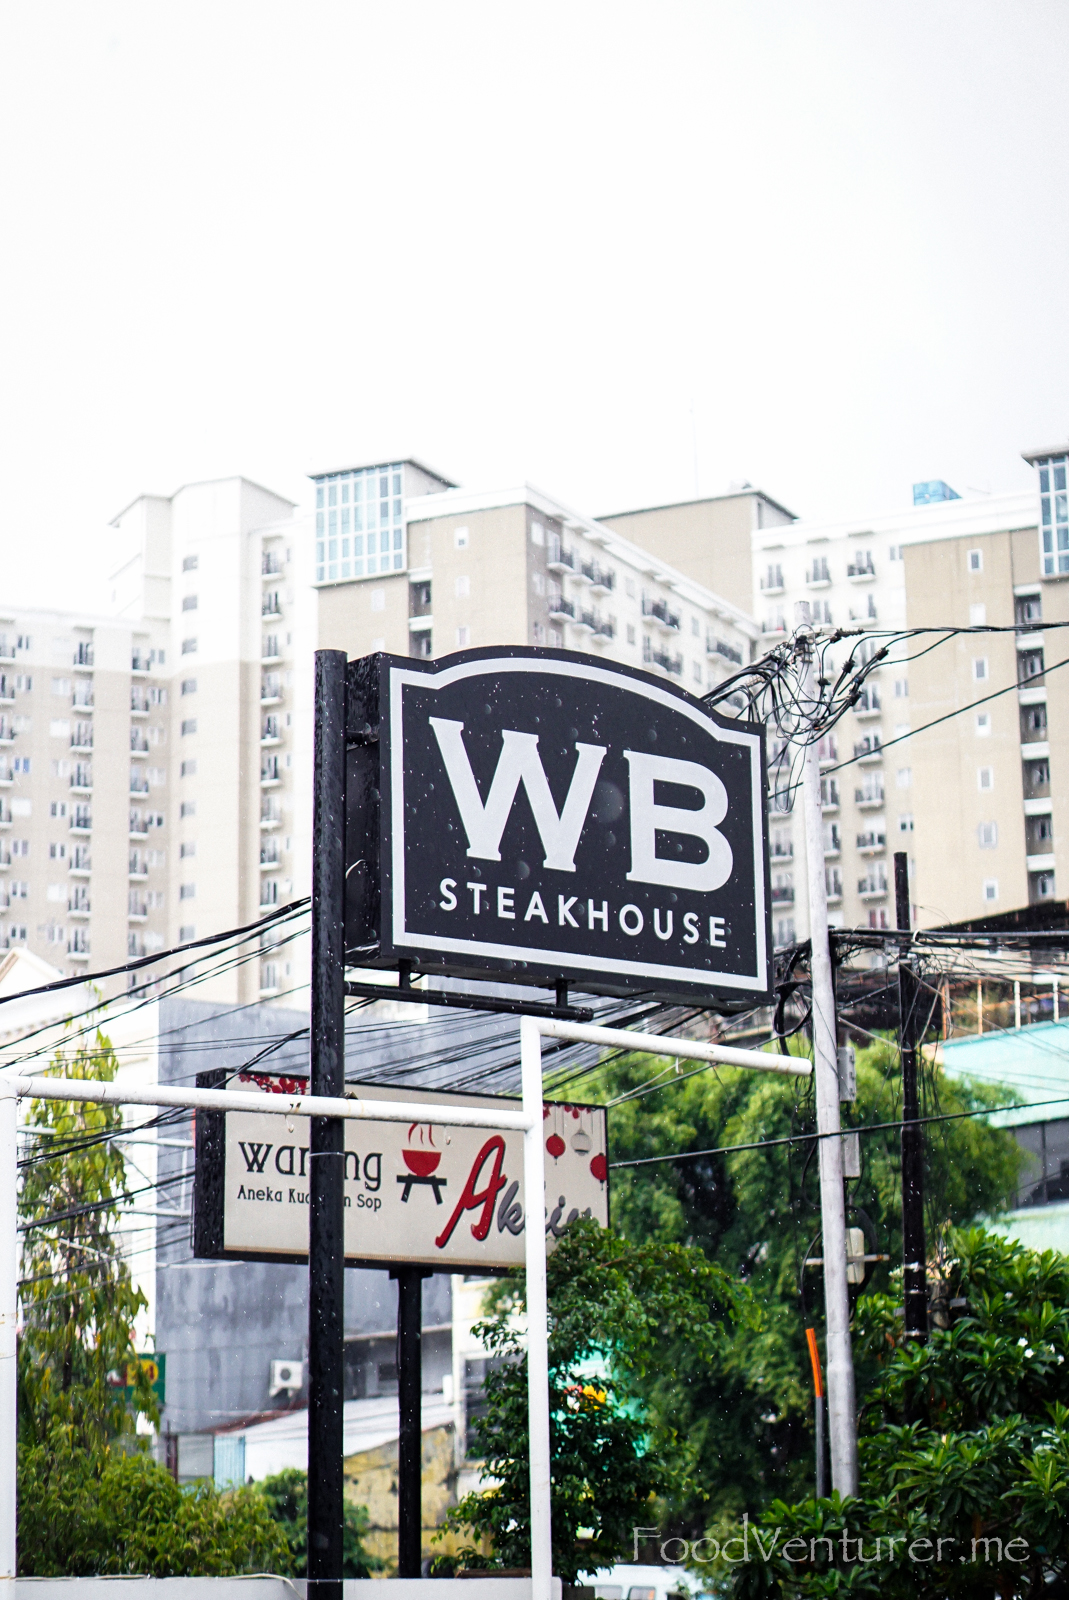 Willie Brothers Steakhouse - Puri